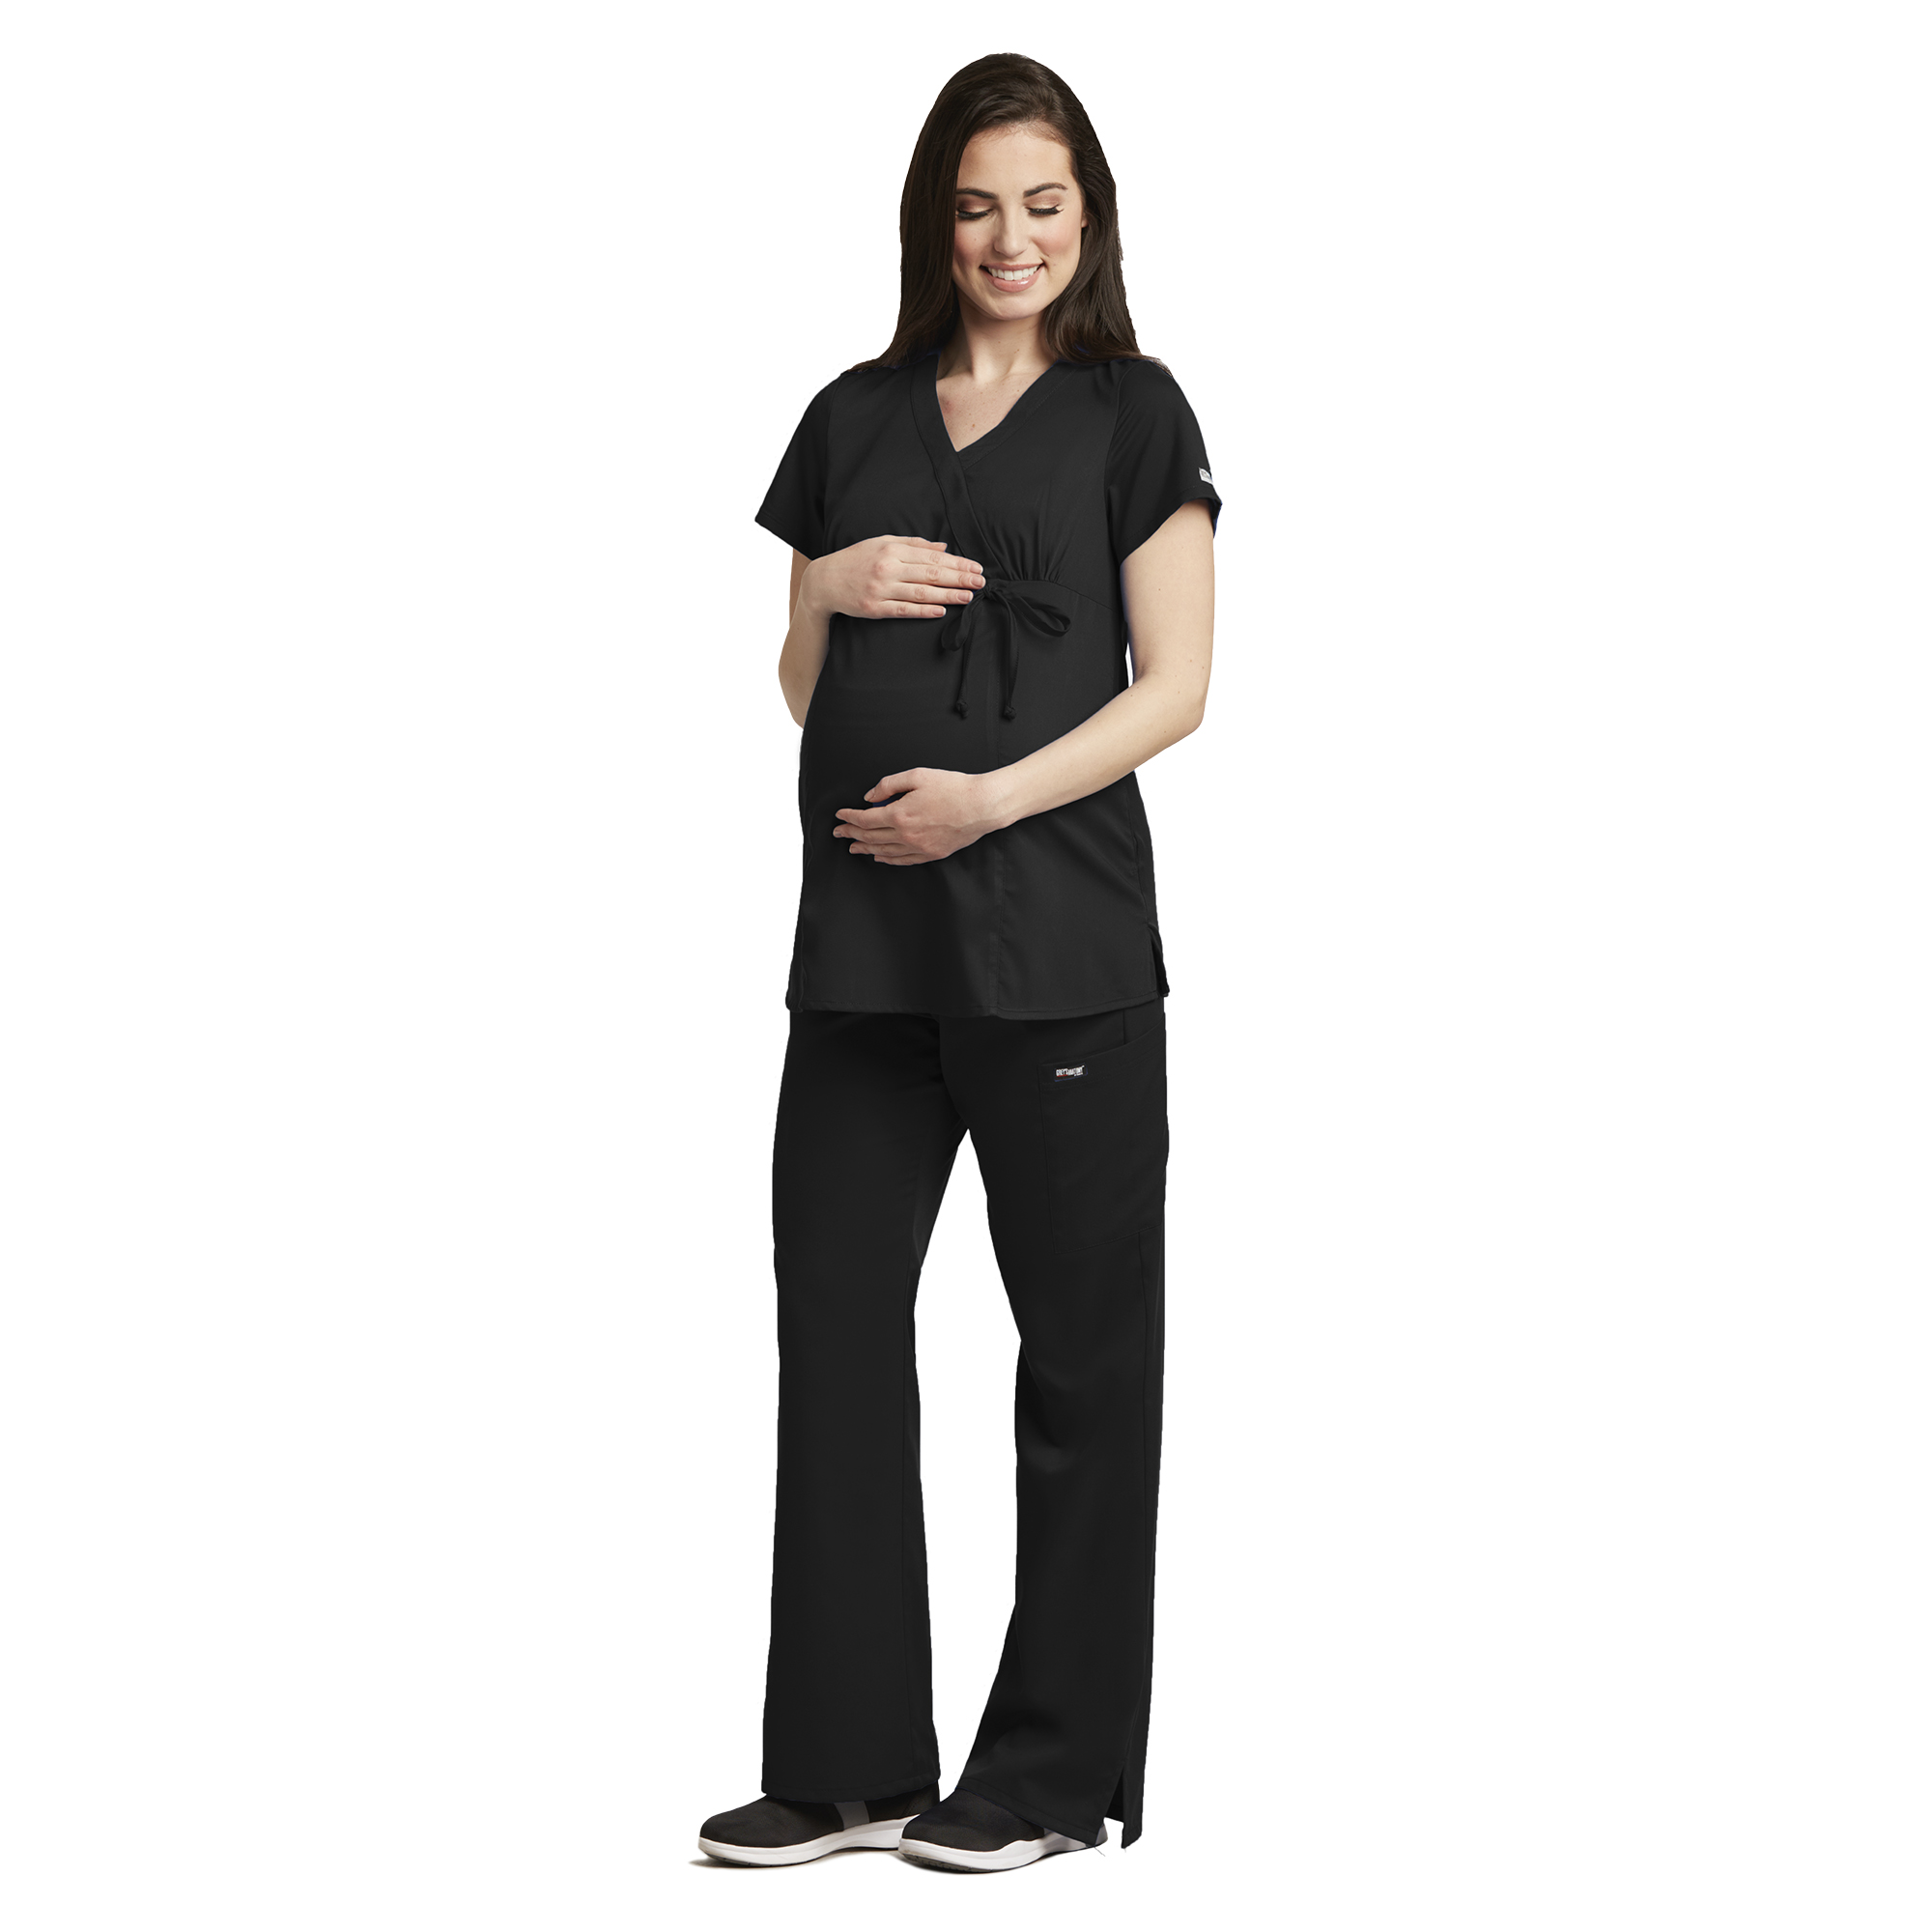 Buy 2pkt Maternity V-Neck - Grey\'s Anatomy Online at Best price - IN